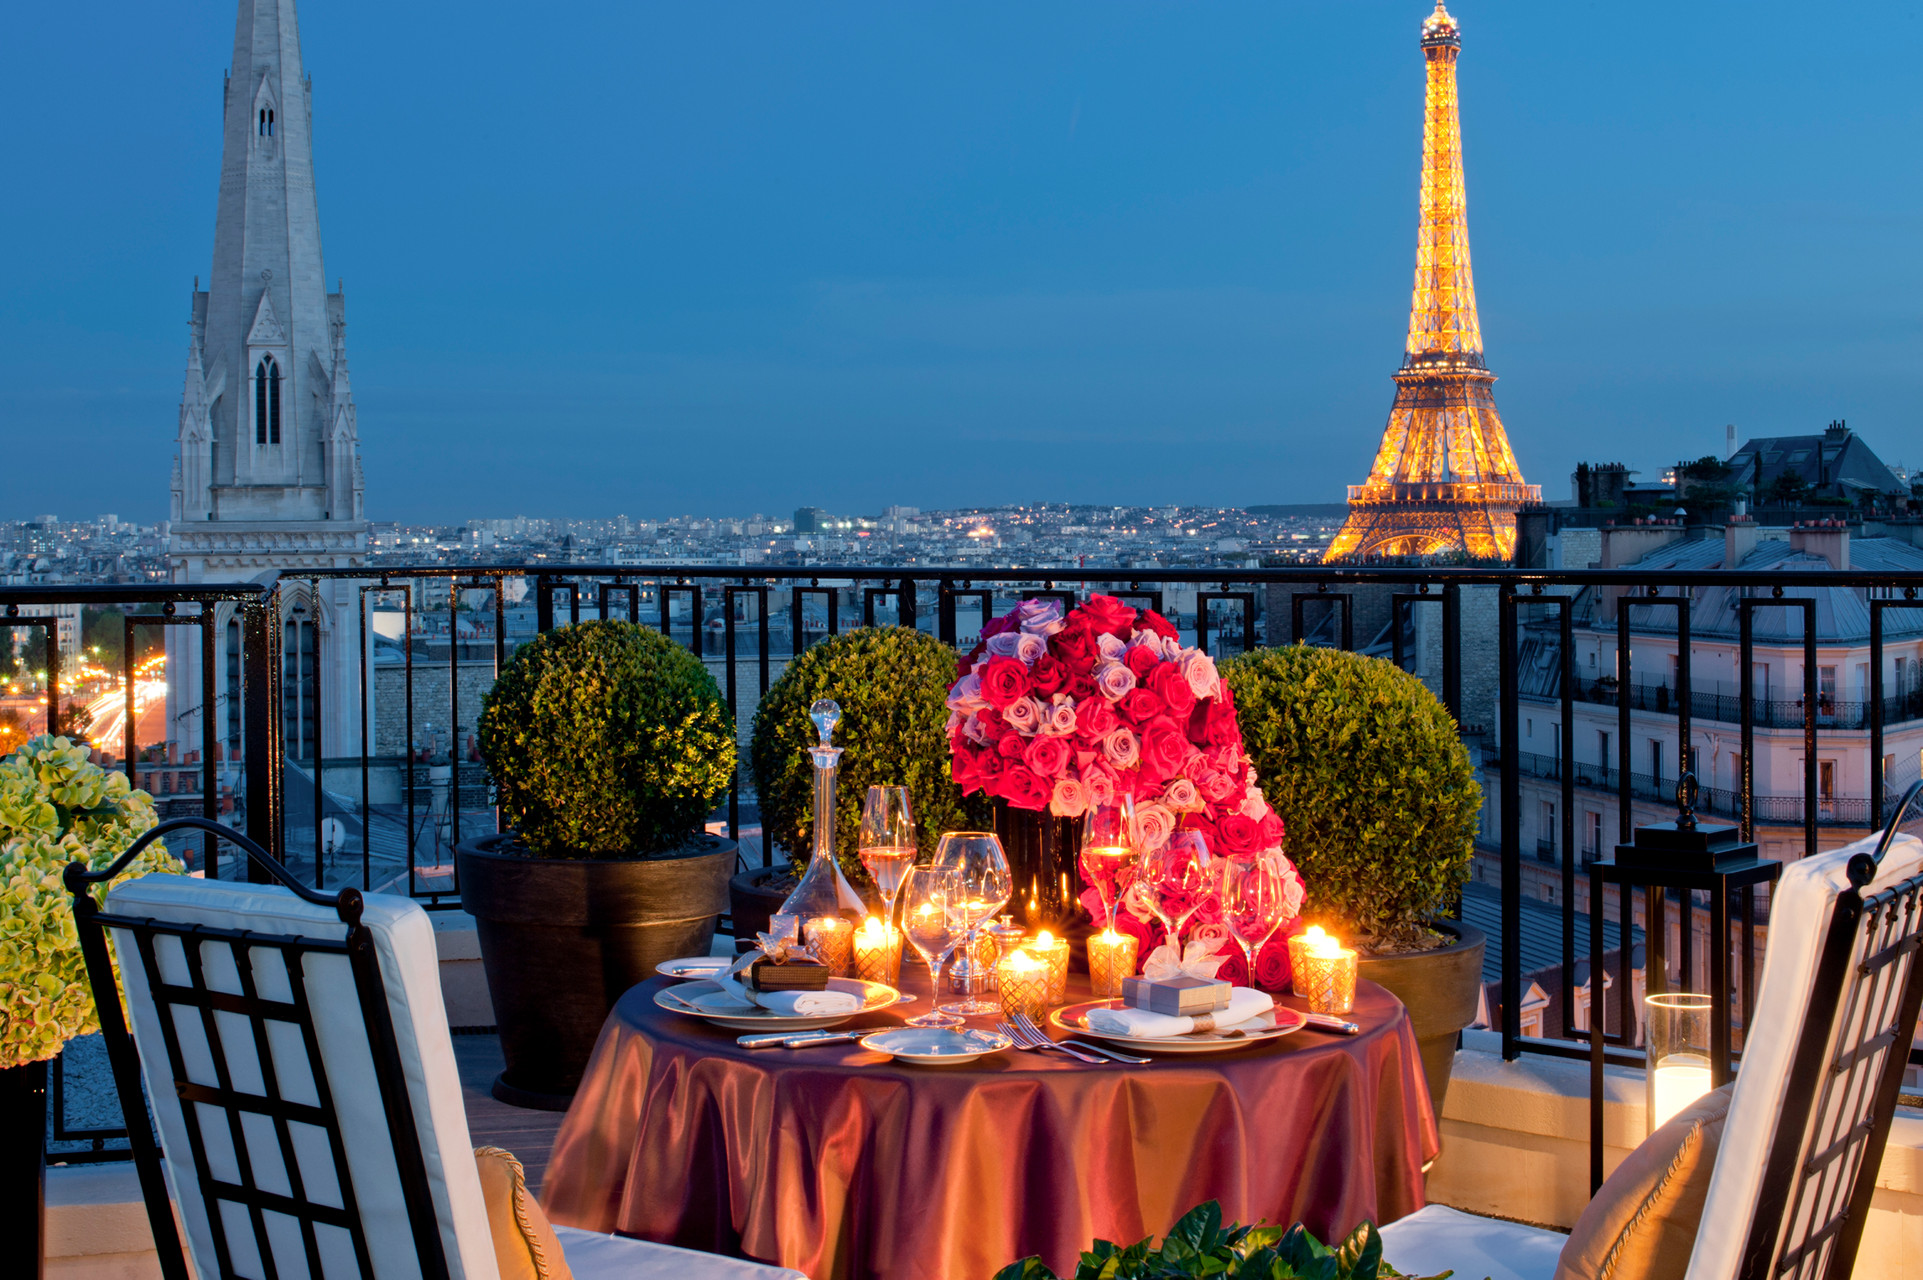 Luxury Travel: 5 Reasons Why Paris Should Be Your Next Destination jacques garcia Best Interior Designers: Jacques Garcia luxury travel reasons why paris next destination valentines day jacques garcia Best Interior Designers: Jacques Garcia luxury travel reasons why paris next destination valentines day